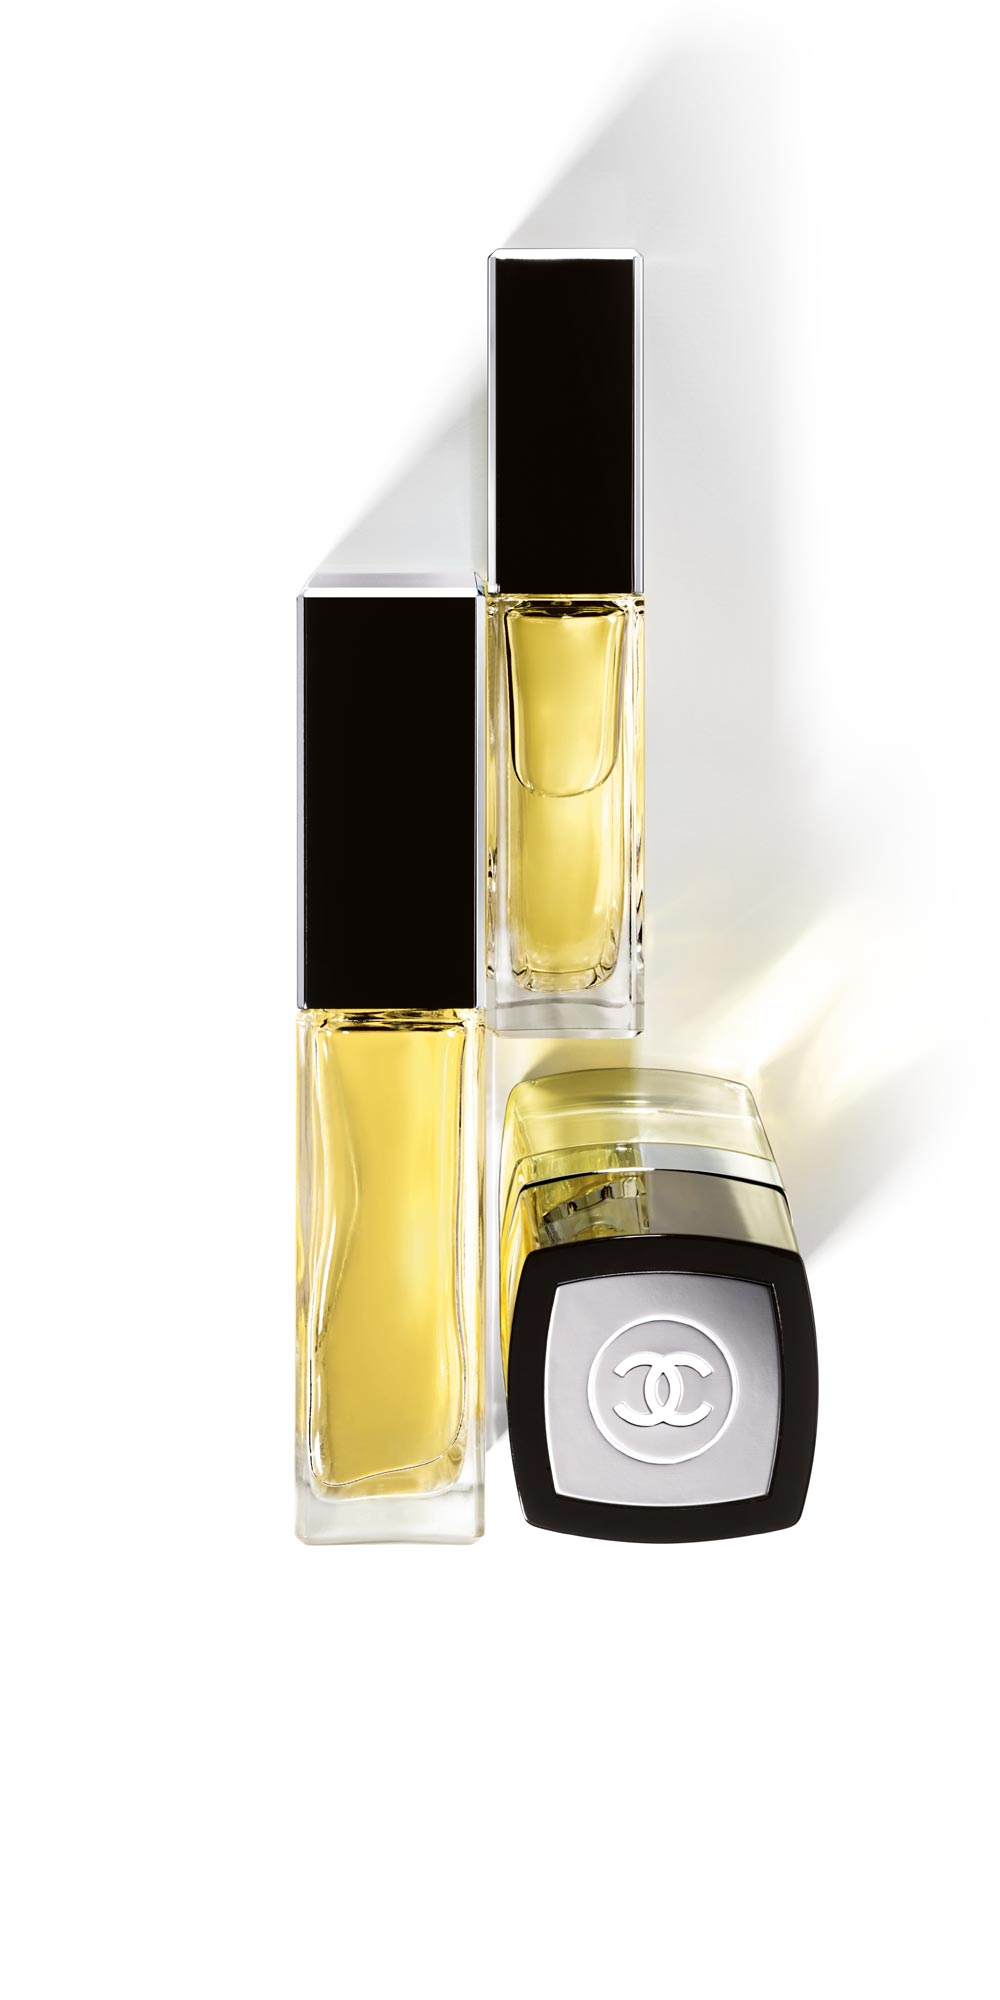 CRISTALLE EAU DE PARFUM SPRAY - Fragrance - CHANEL